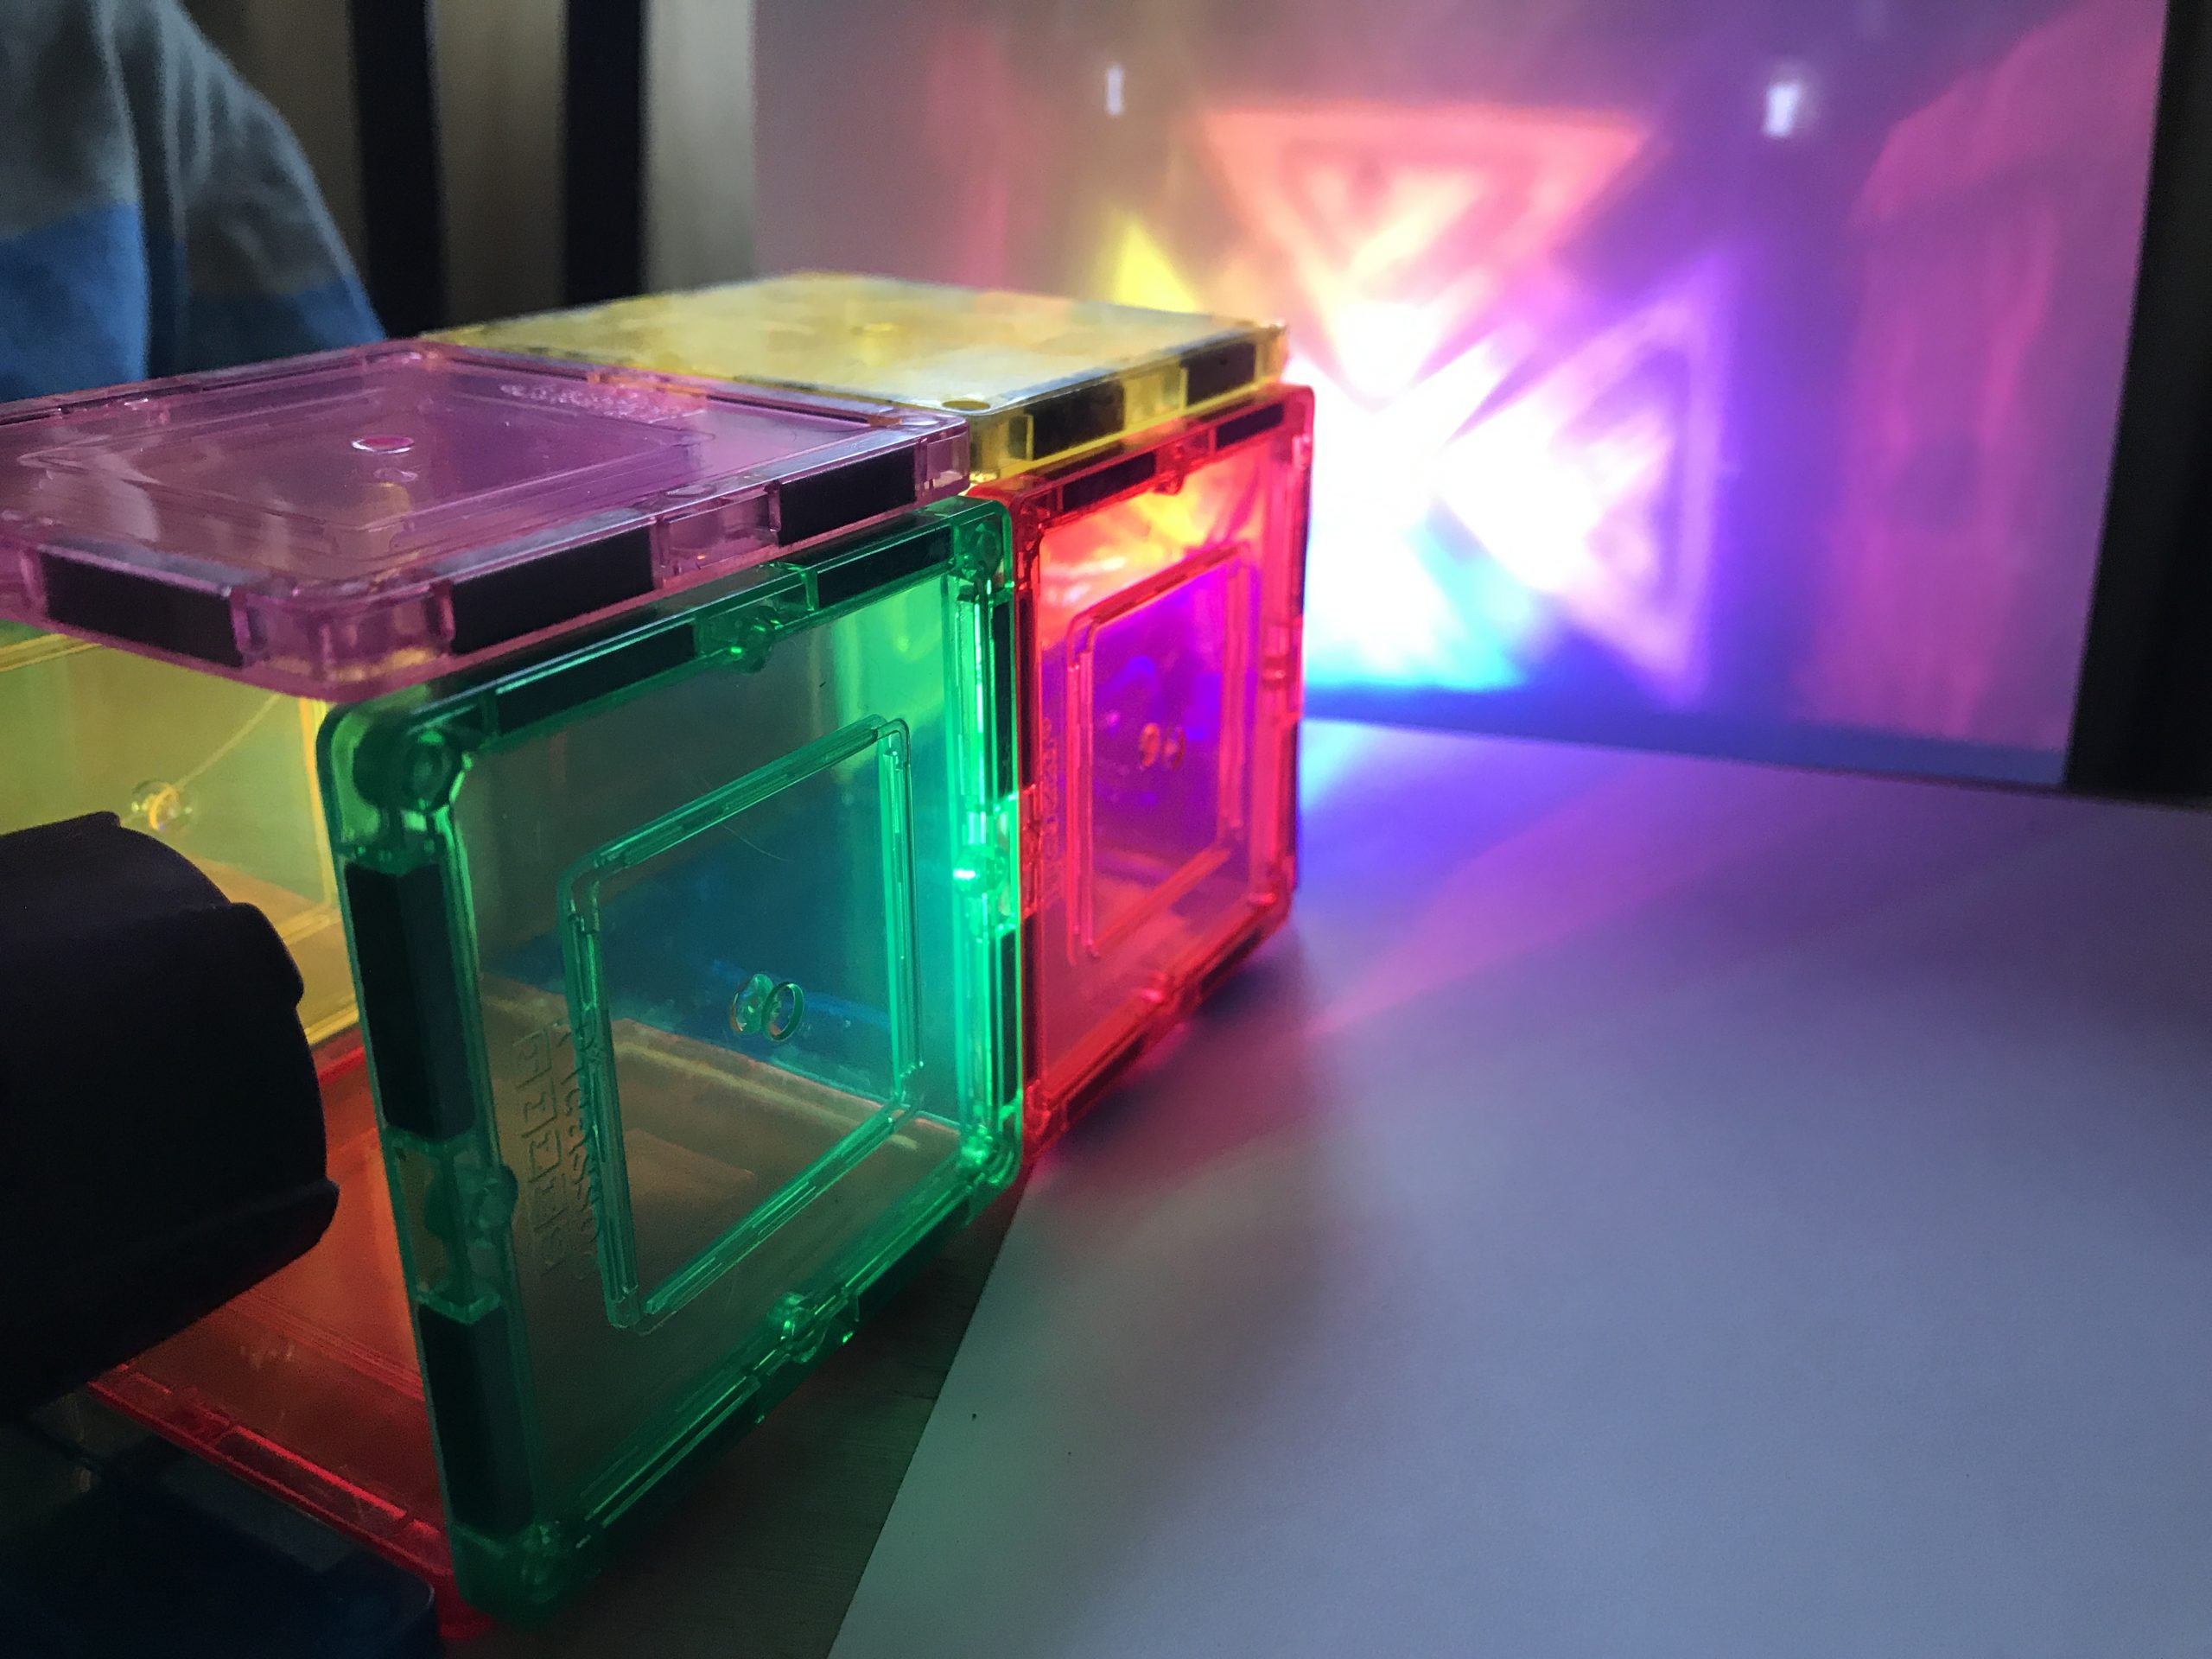 A flashlight shines through the end of a rectangular construction of colorful, translucent blocks, casting a projections of bright triangular shapes against a blank piece of paper.